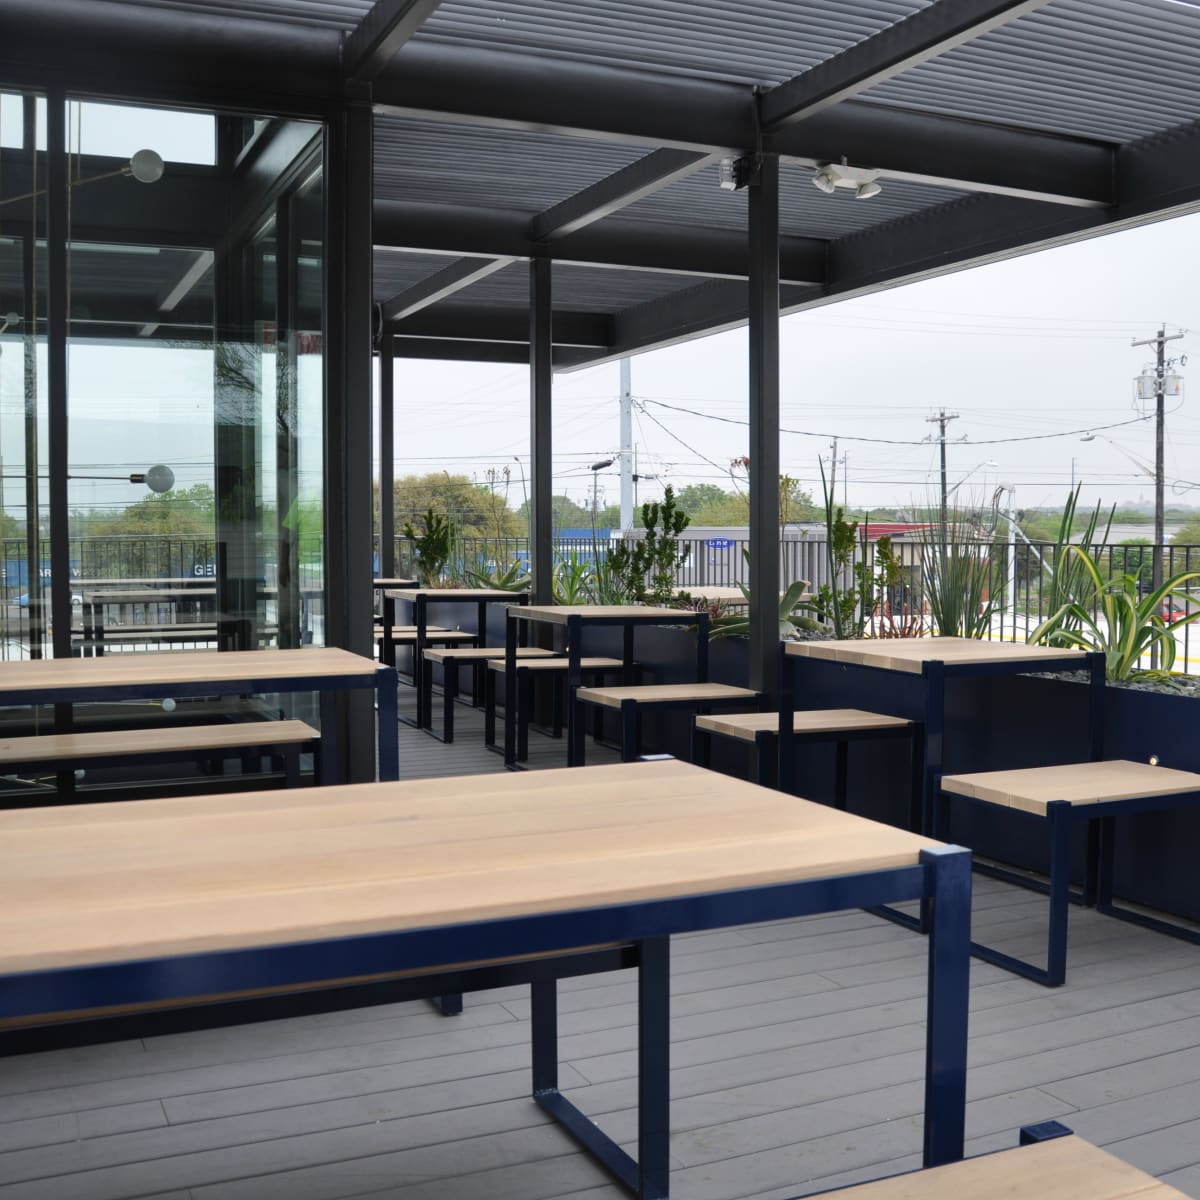 London S Best Restaurants For Al Fresco Dining: The 10 Best New Patios In Austin For Drinking And Dining